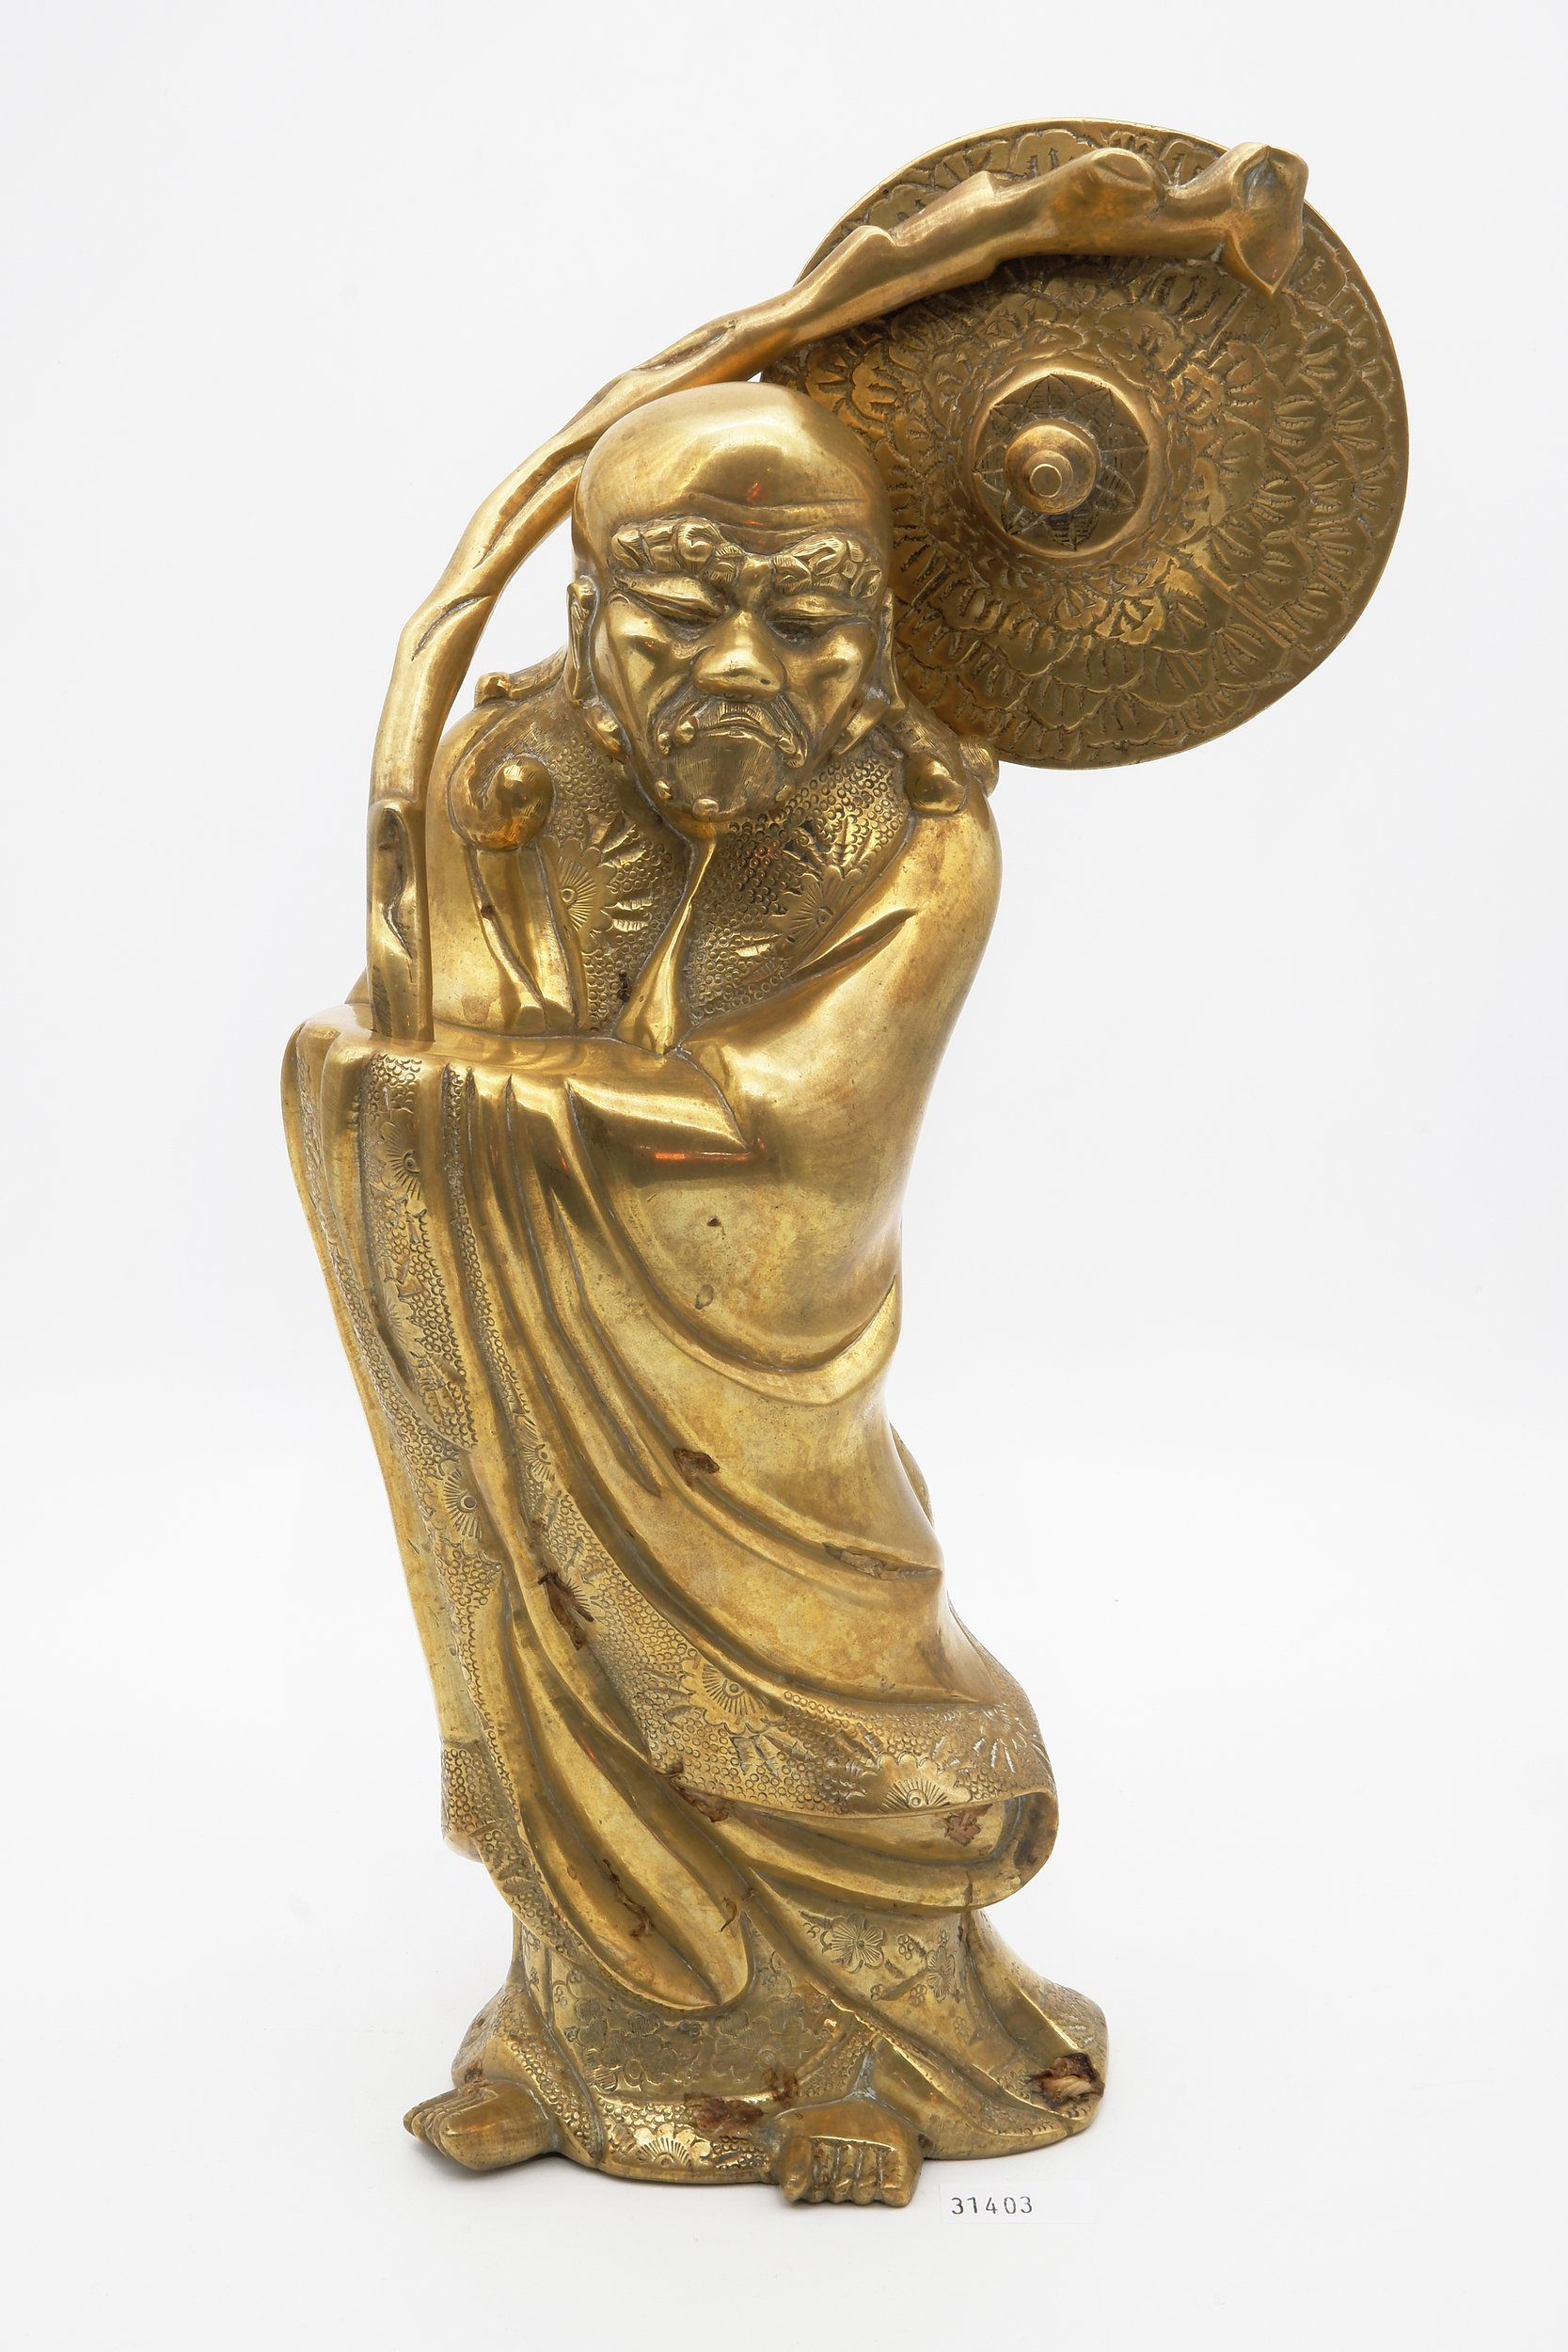 'Chinese Cast and Engraved Polished Bronze/Brass Figure of a Sage, Circa 1900'